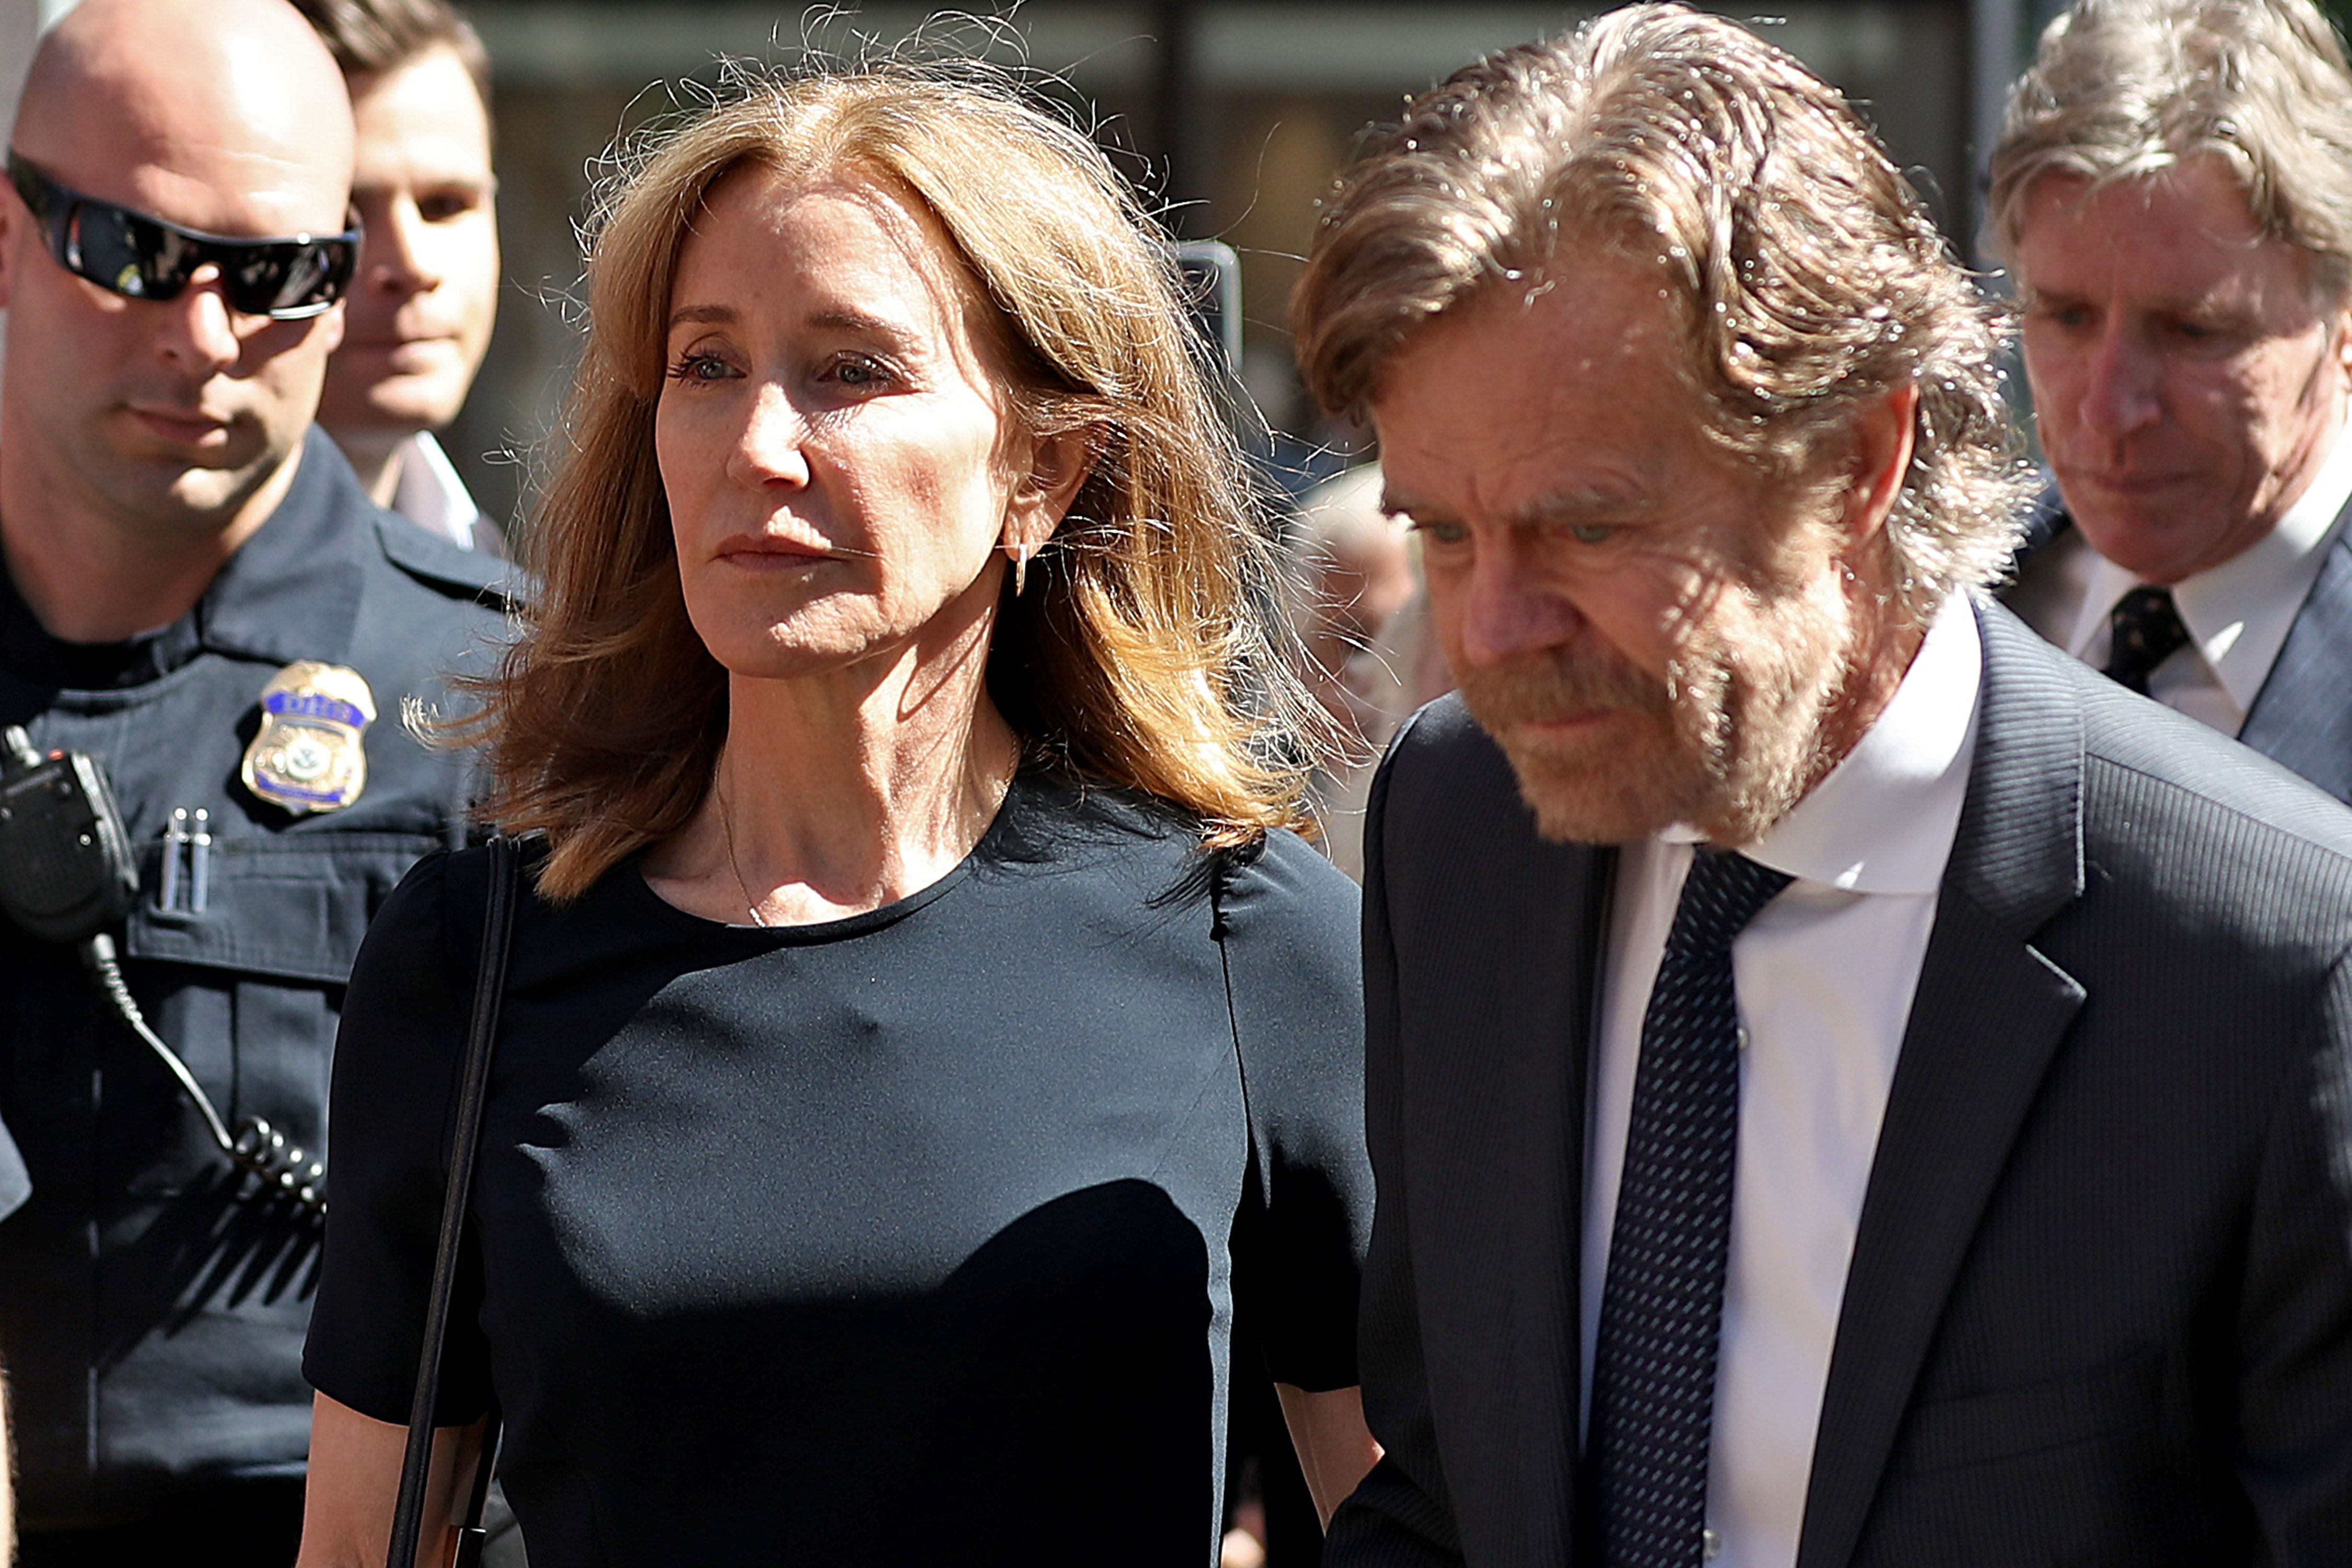 Felicity Huffman sentenced to prison over college bribery scandal